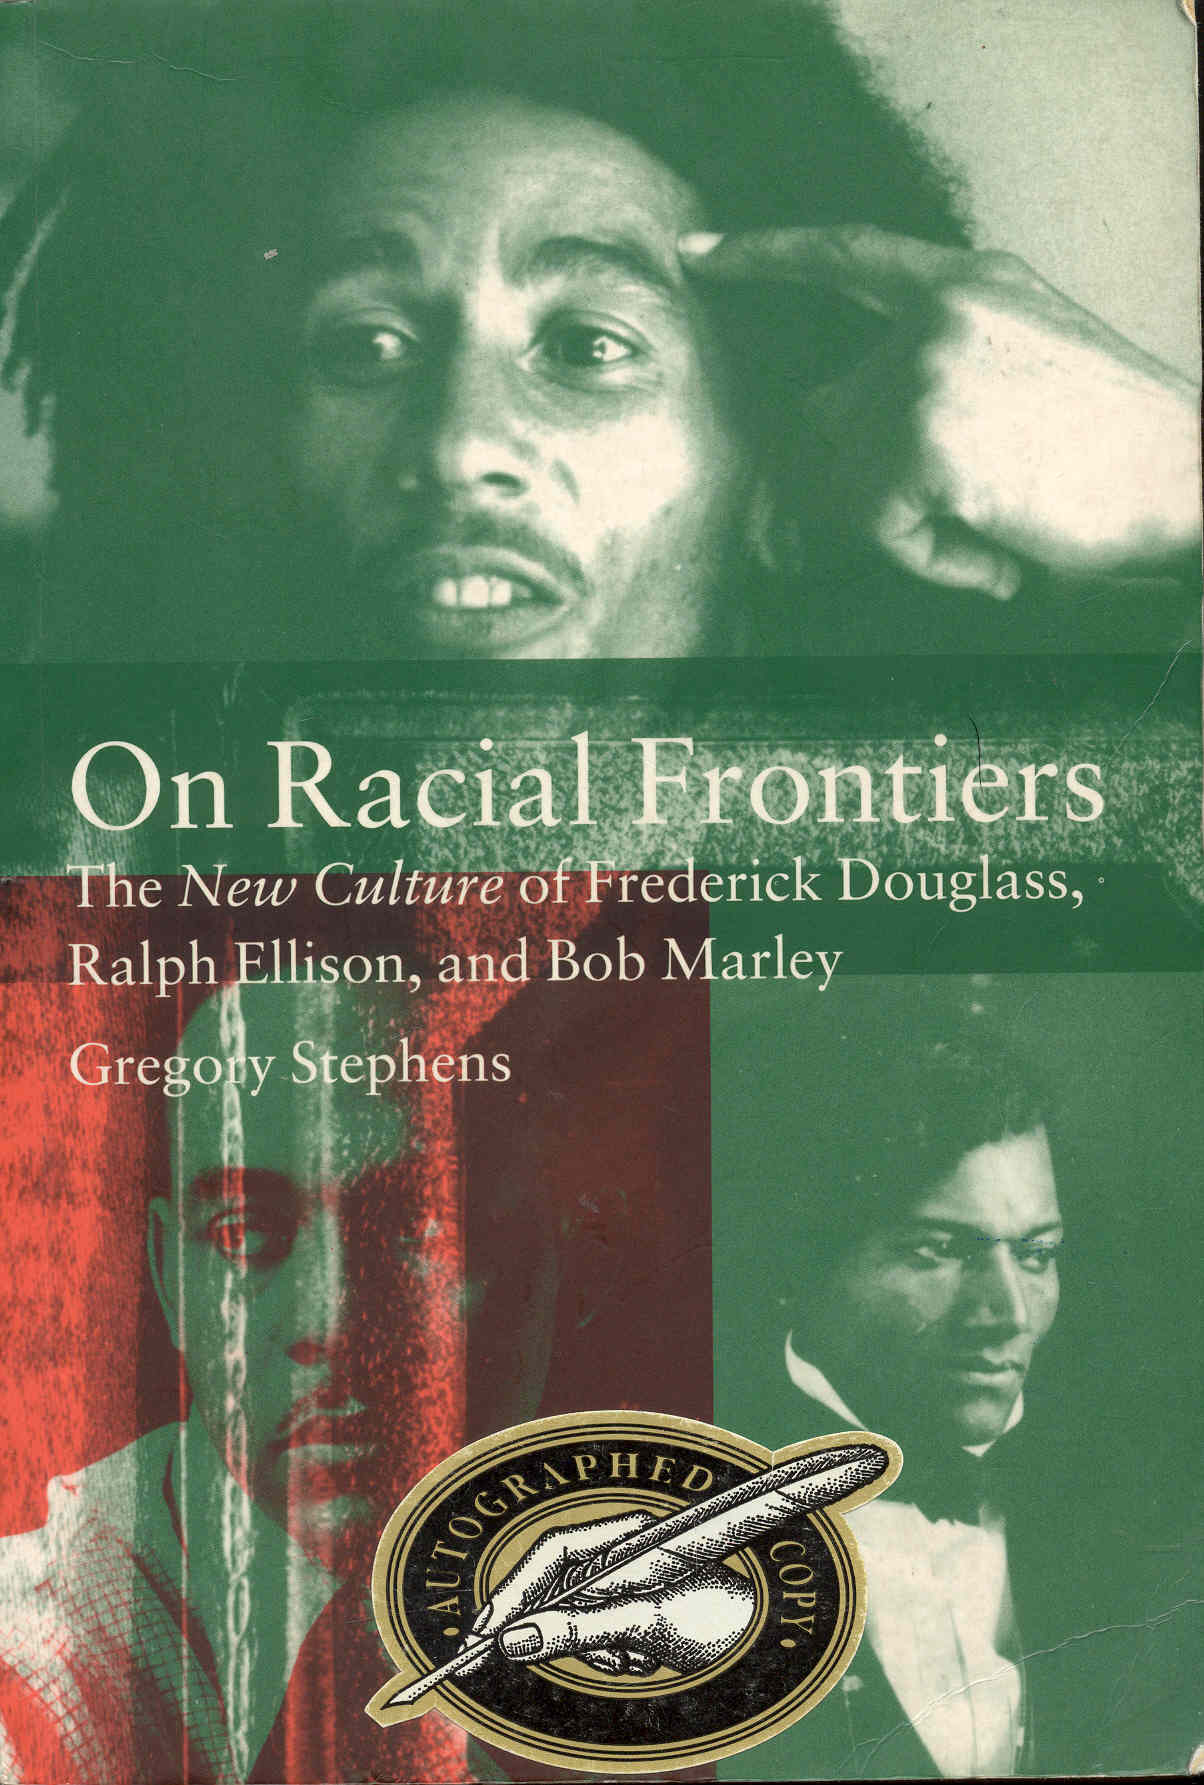 Image for On Racial Frontiers: The New Culture of Frederick Douglass, Ralph Ellison, and Bob Marley